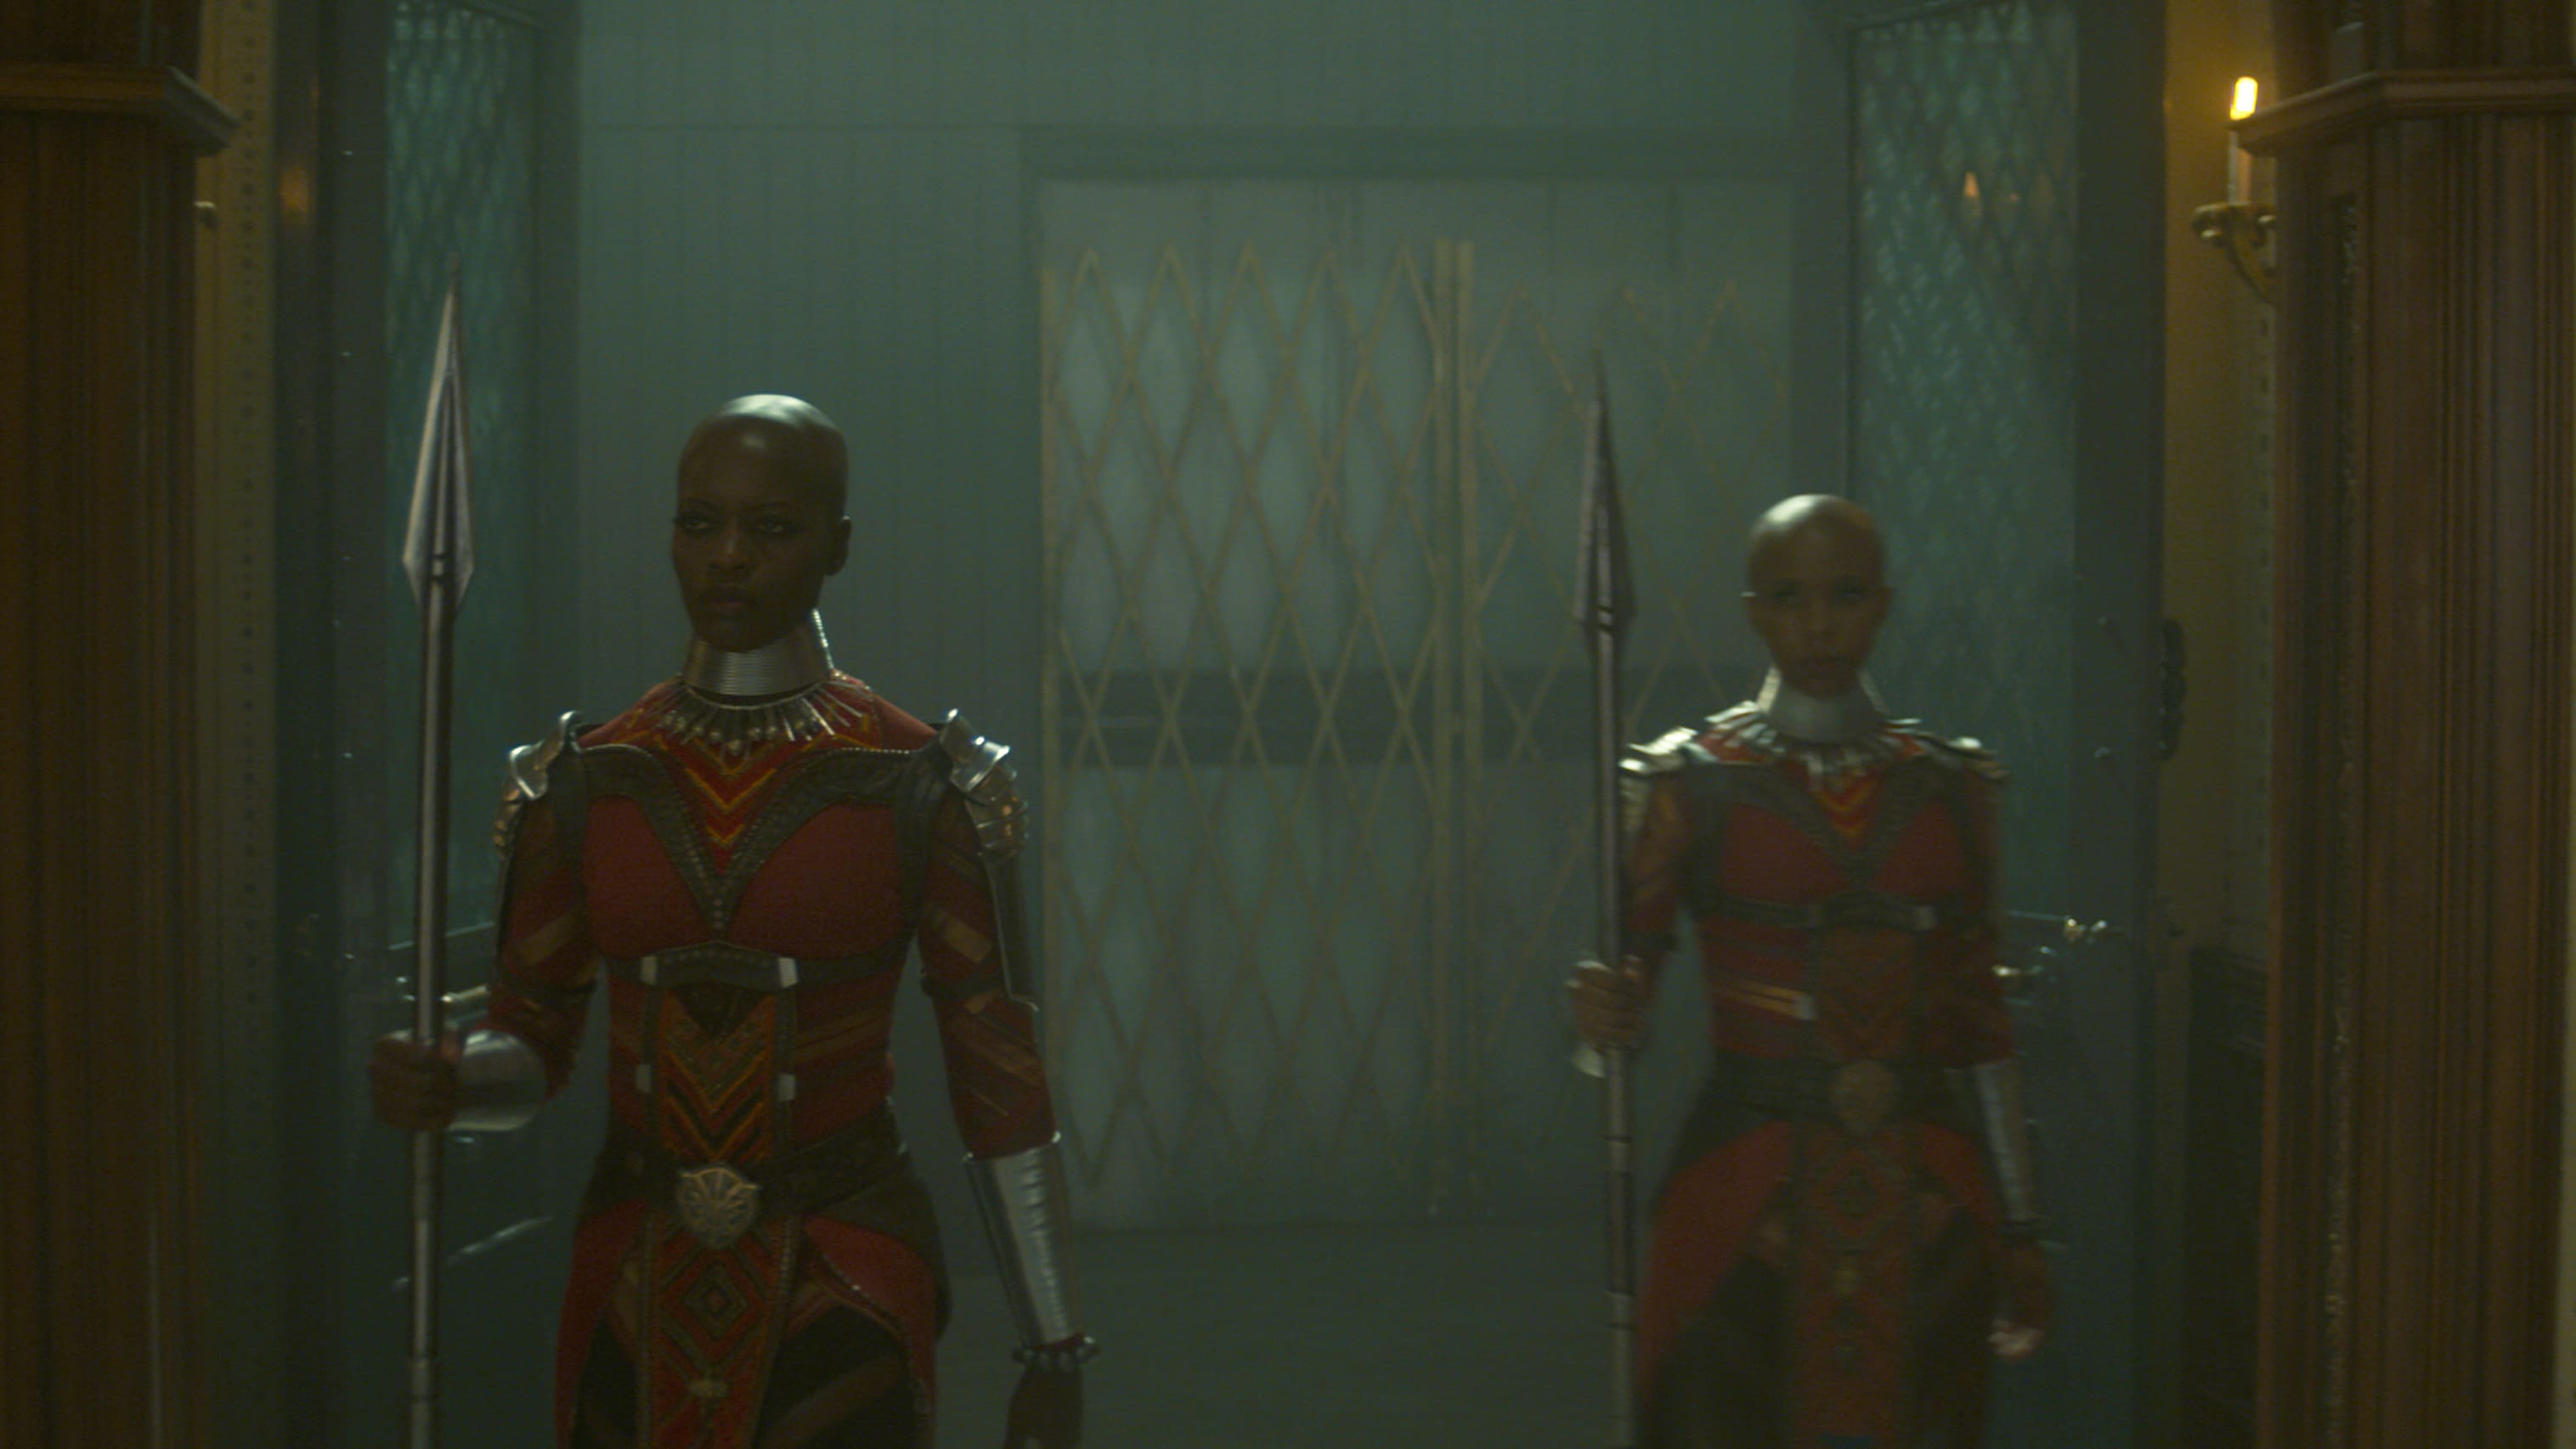 (L-R): Ayo (Florence Kasumba) and Yama (Zola Williams) in Marvel Studios' THE FALCON AND THE WINTER SOLDIER exclusively on Disney+. Photo courtesy of Marvel Studios. ©Marvel Studios 2021. All Rights Reserved.